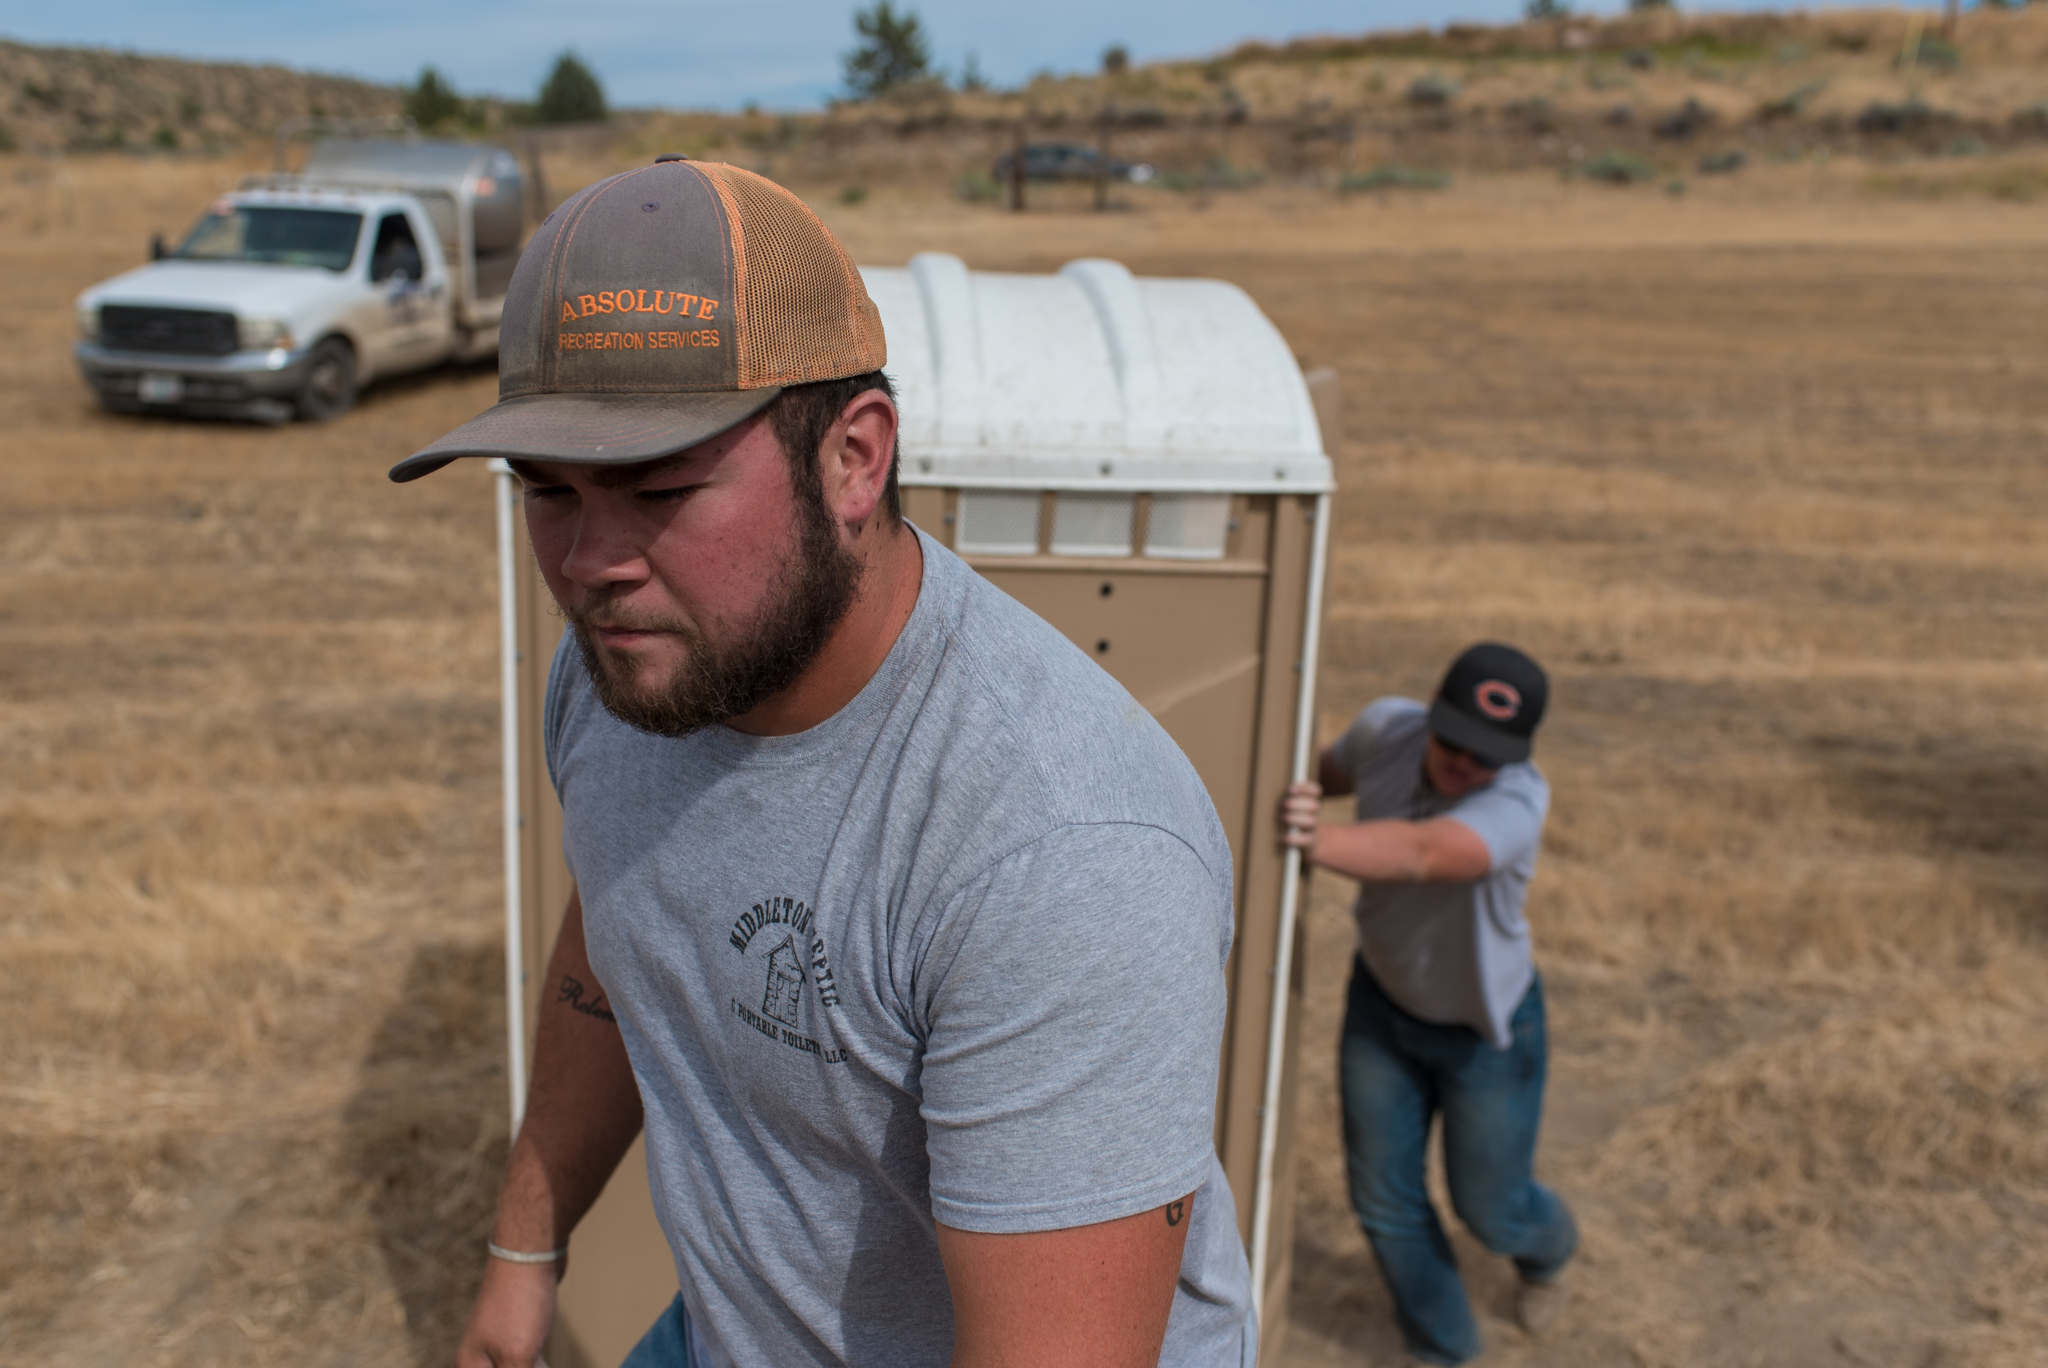 Middleton Septic & Portable Toilets employees Zach Lofting (right) and Kyler Cox unload 10 portable toilets in a local farm field Aug. 14, 2017 in Madras.  –Photos by Ethan Rocke